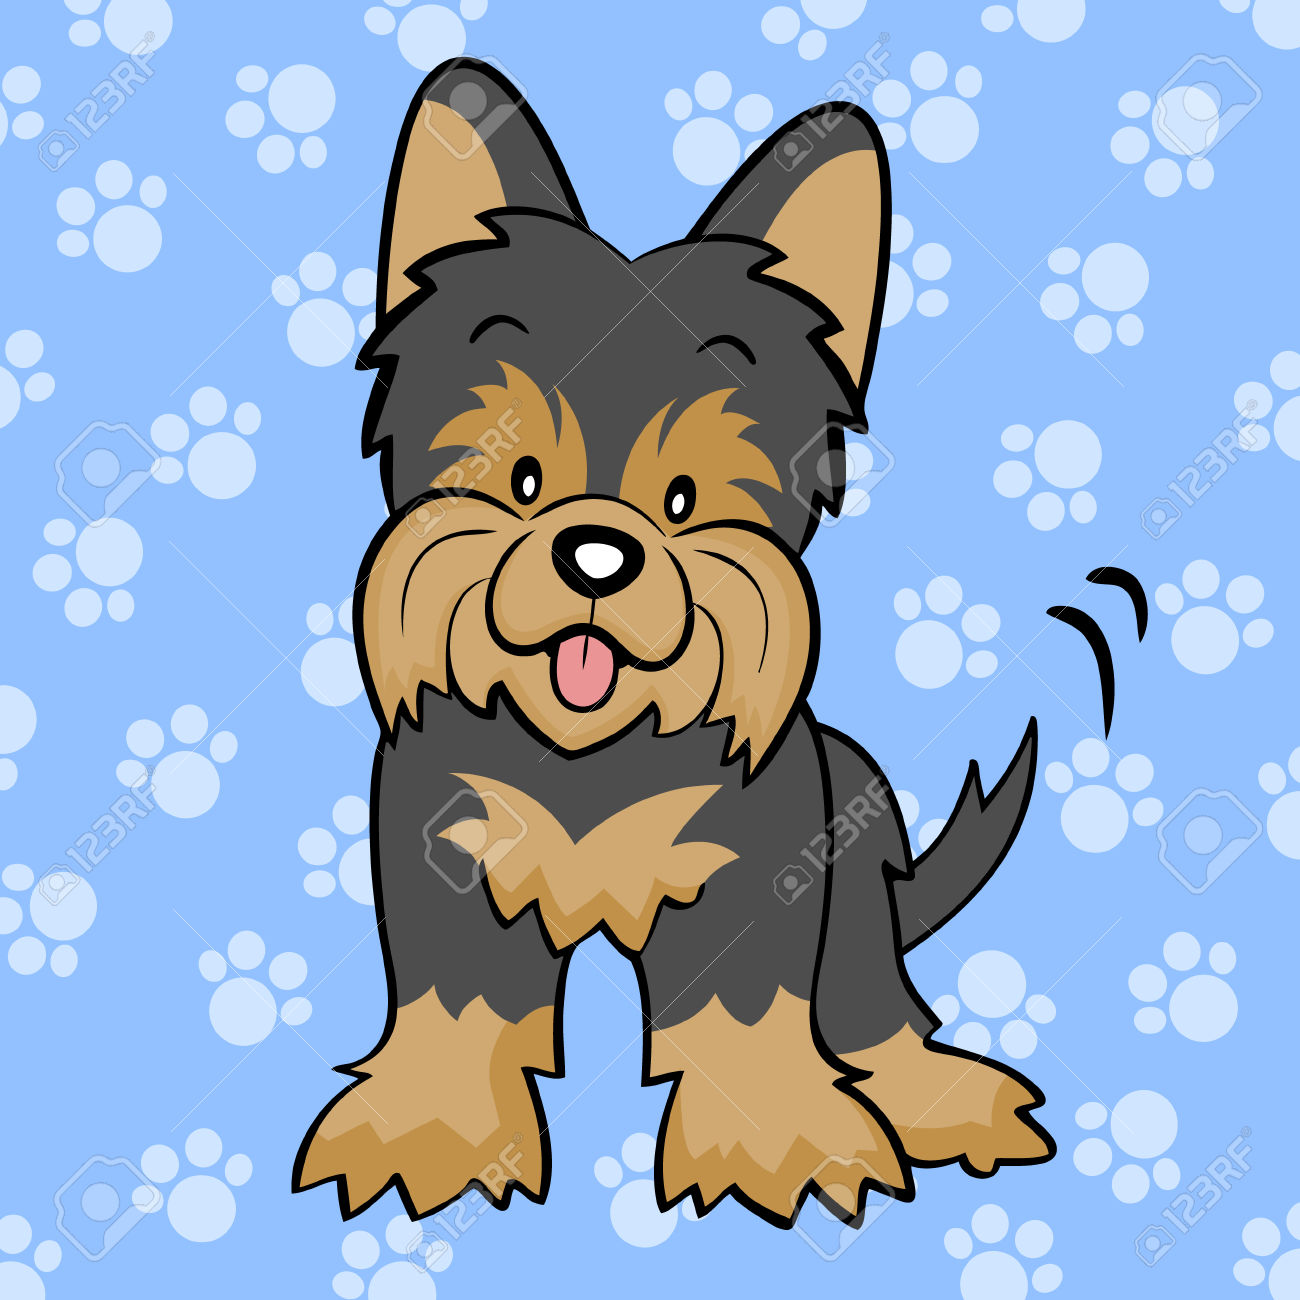 Yorkies clipart cute Terrier dog Collection Yorkie: animated